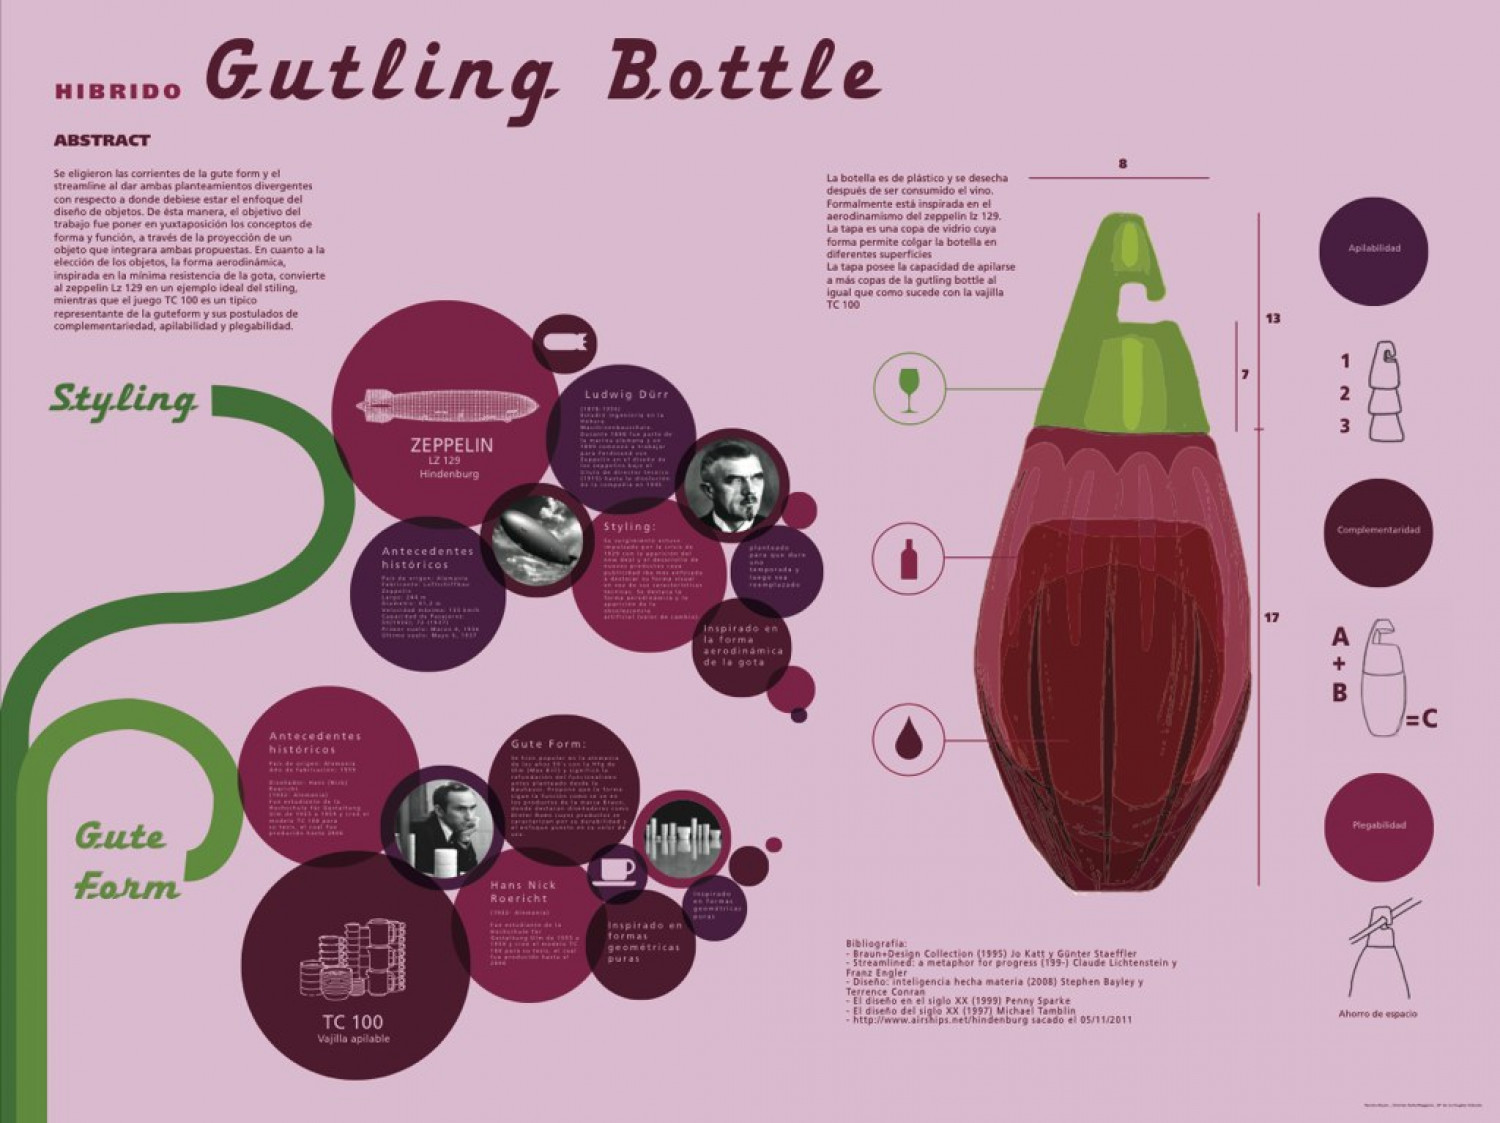 Gutling Bottle Infographic